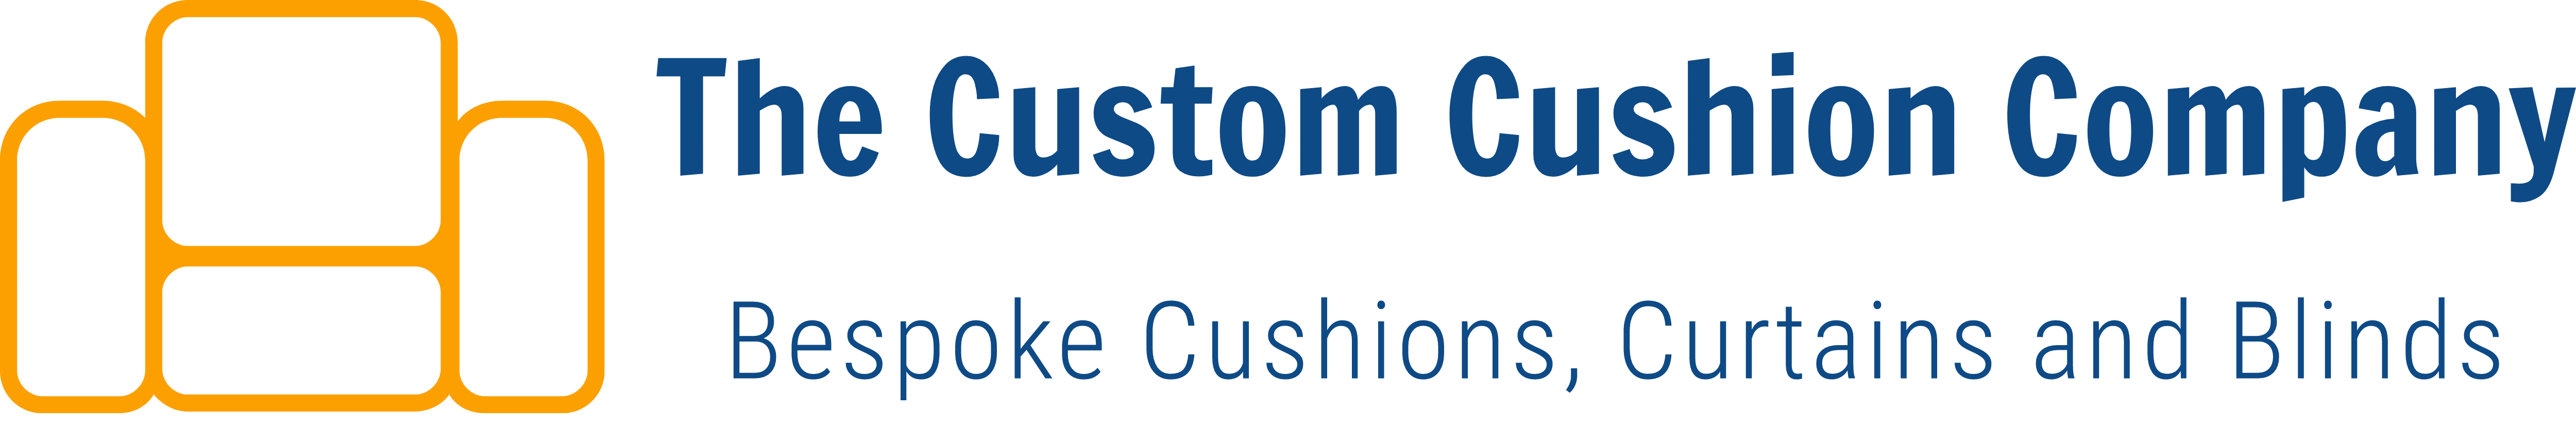 The Custom Cushion Company